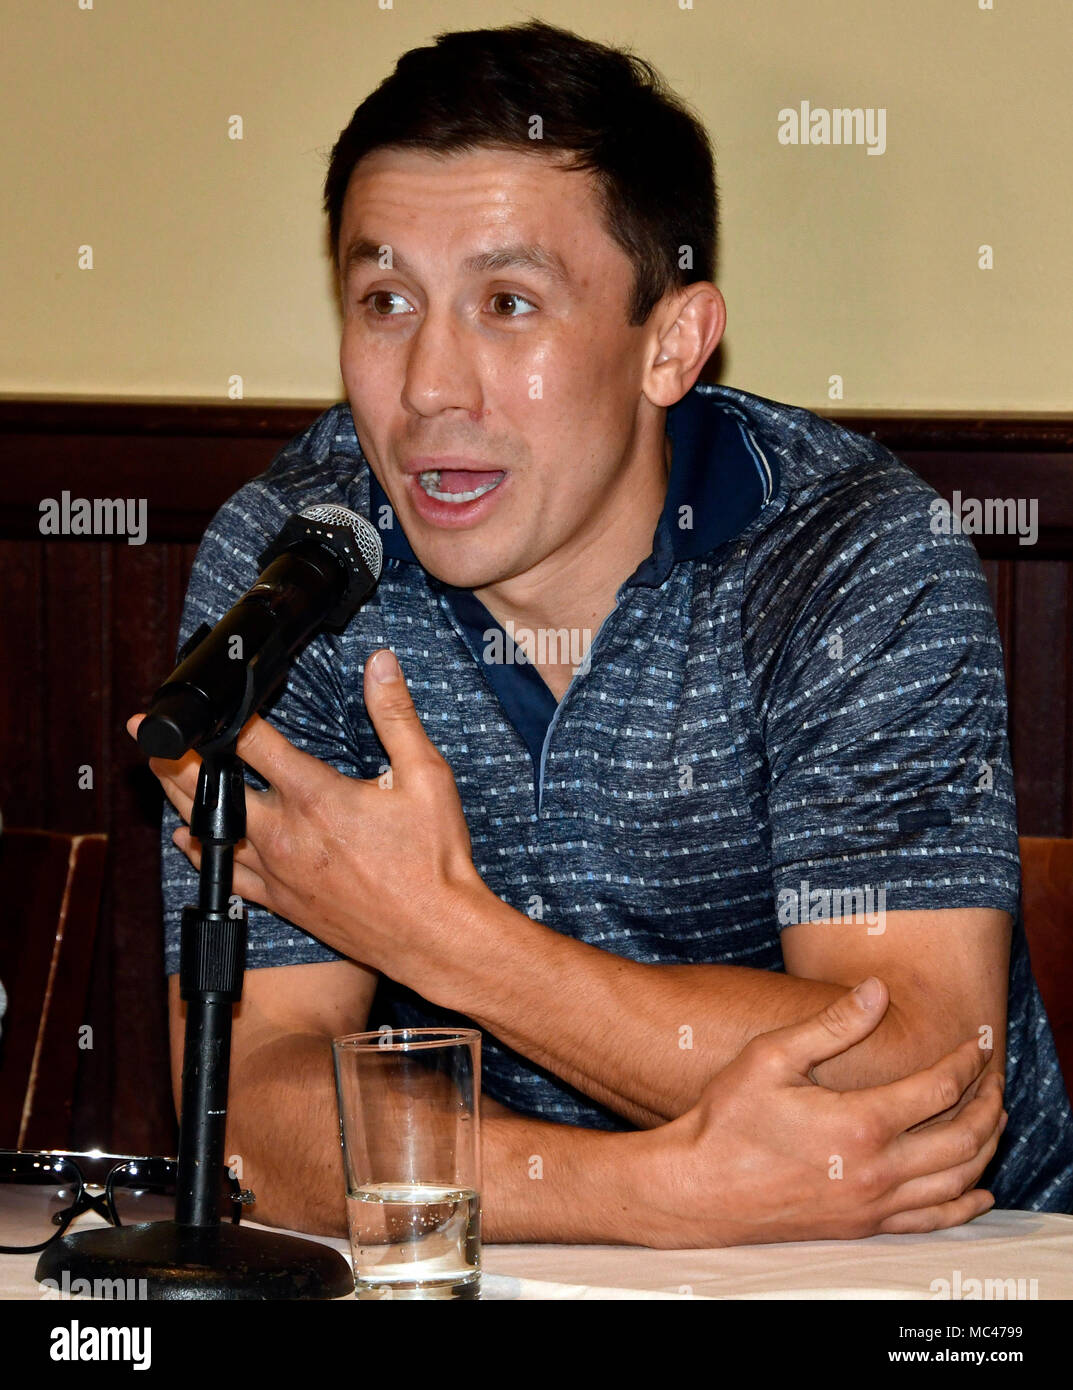 4-12-18. Los Angeles, CA. Gennady (GGG) Golovkin held a press conference in Los Angeles Thursday with the unified middleweight titleholder present, and he announced -- absolutely nothing.Nothing is finalized for a May 5 fight. But, it appears the WBC, and the WBA changed their minds about former 154-pound world title contender Vanes Martirosyan.In a conference call Tuesday morning, officials with the IBF, WBC, and WBA, turned down the Martirosyan fight. The Team is waiting for the Las Vegas boxing commission to make their final decision on how long of a suspension of Canelo on the April-1 - Stock Image